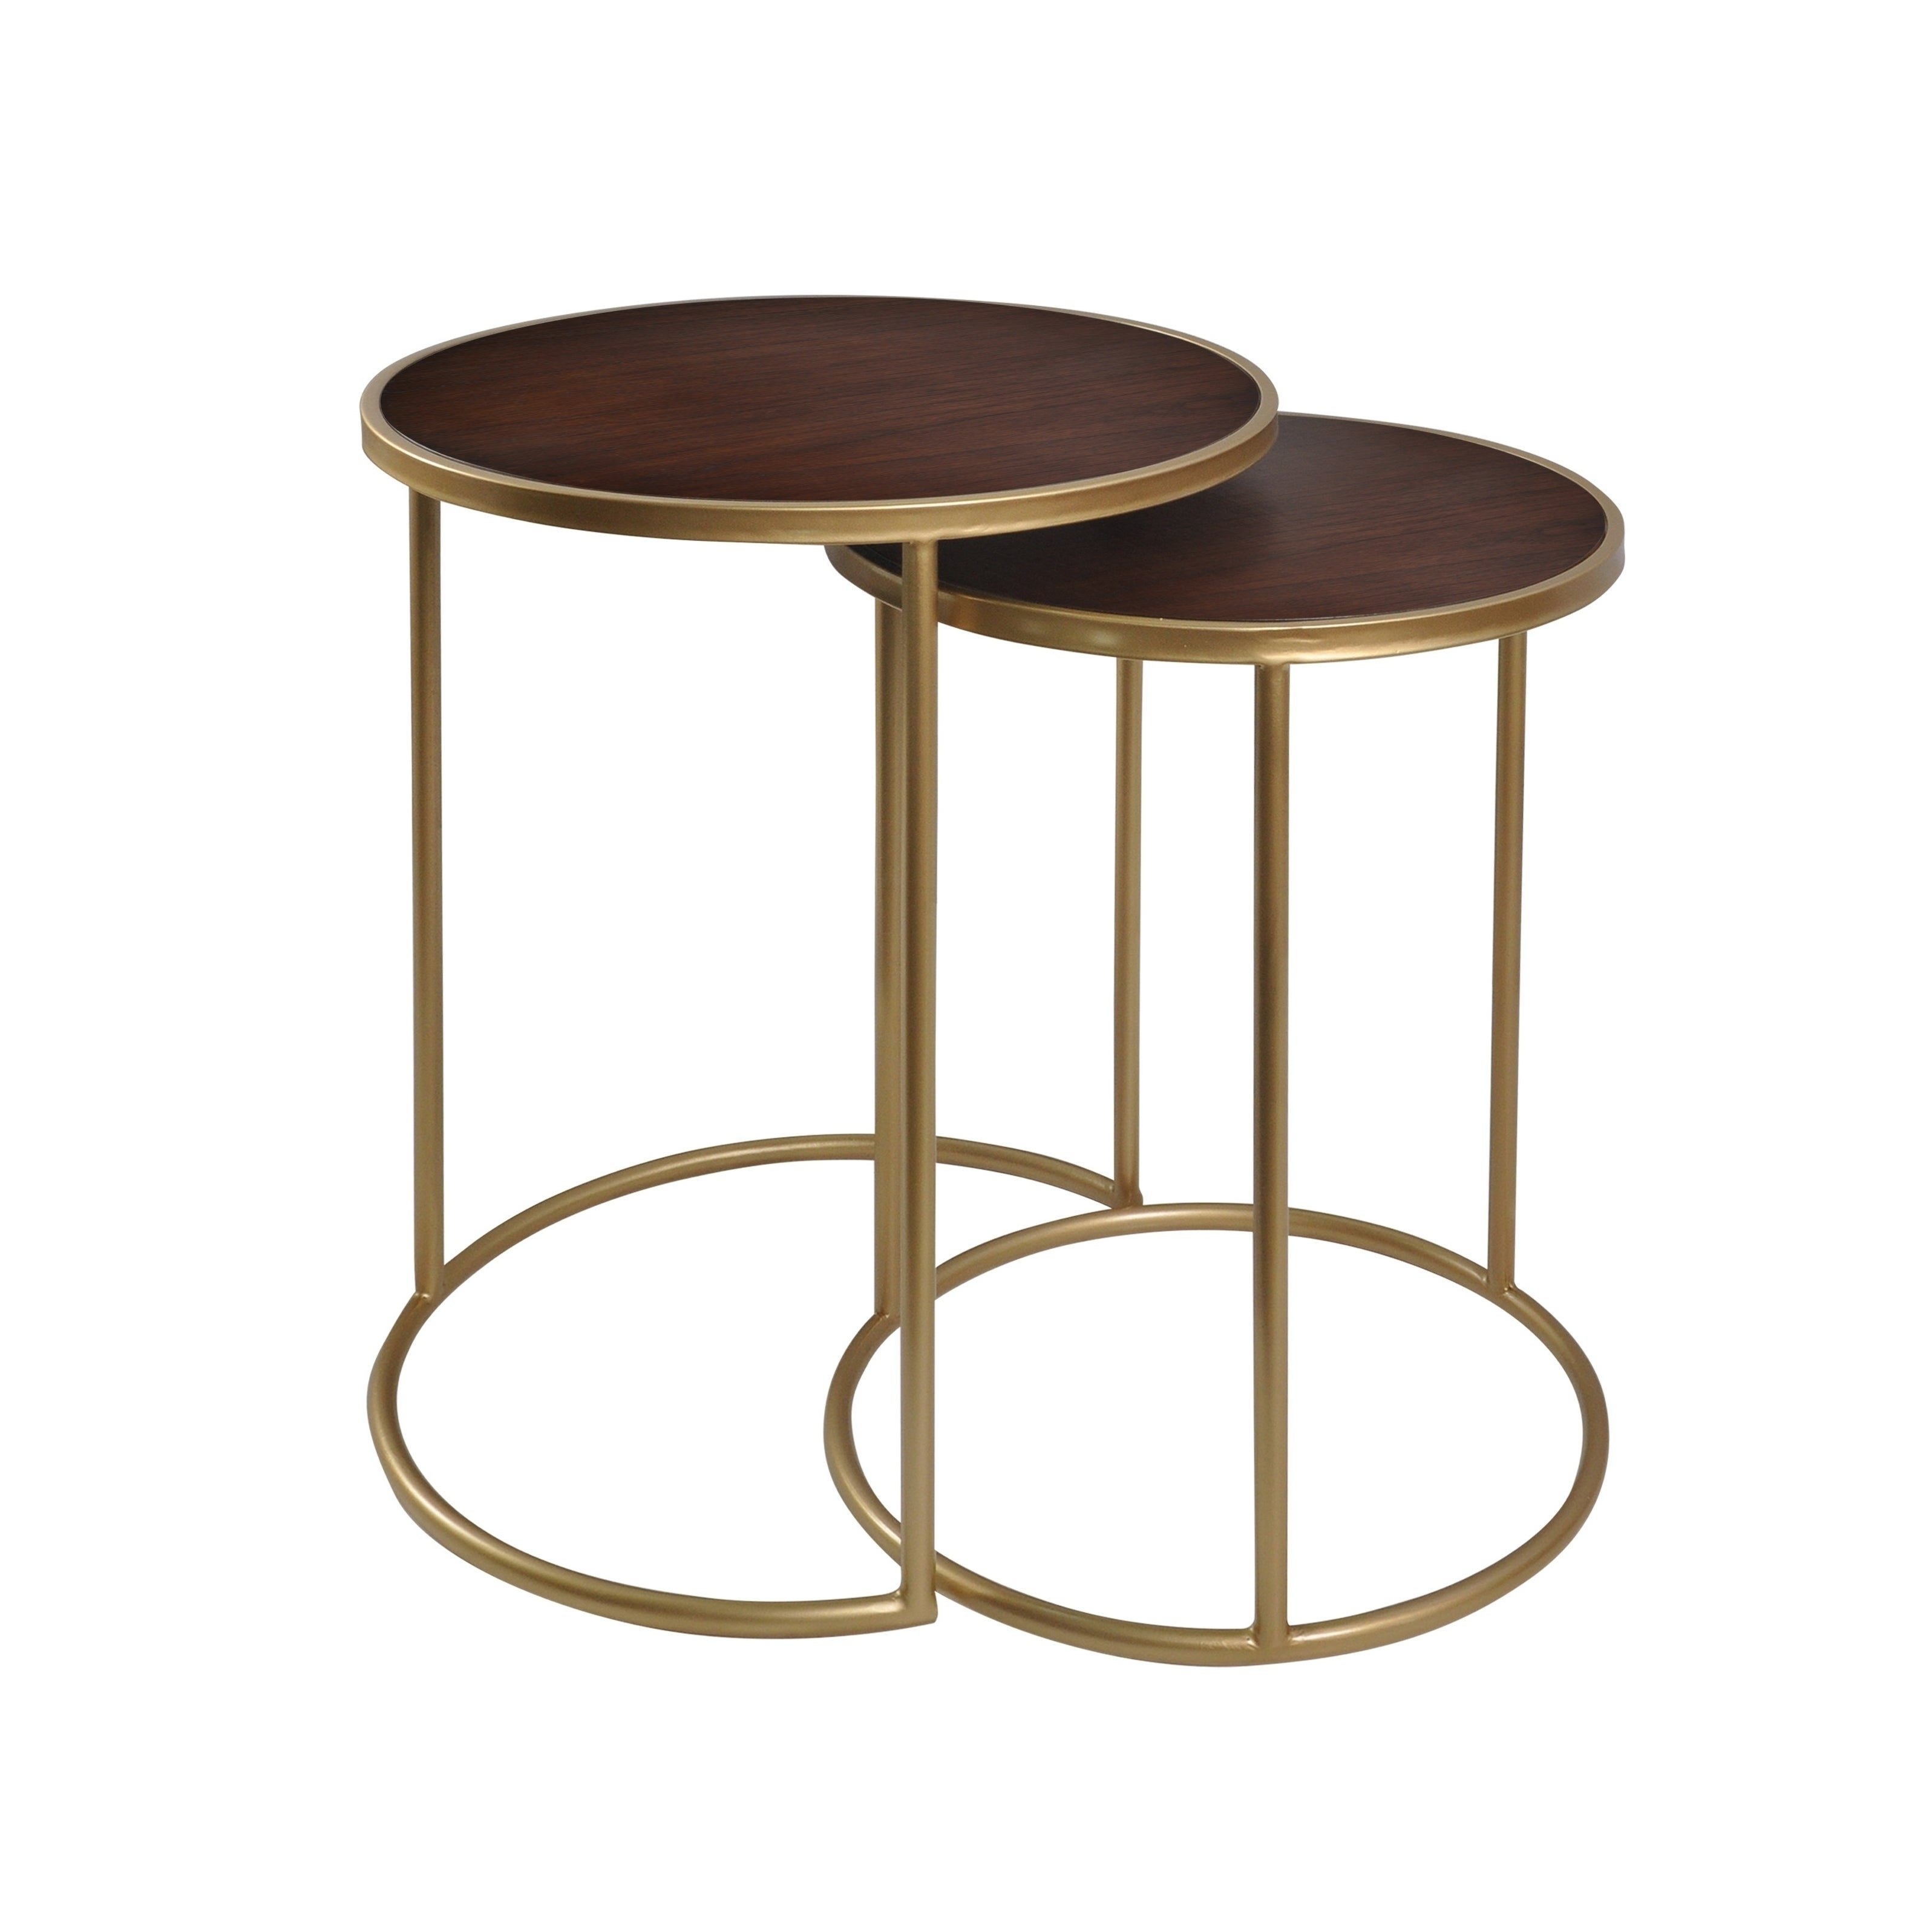 Shop bryan keith mahogany bay nesting metal tables matte wood top set of 2 free shipping today overstock com 20730486